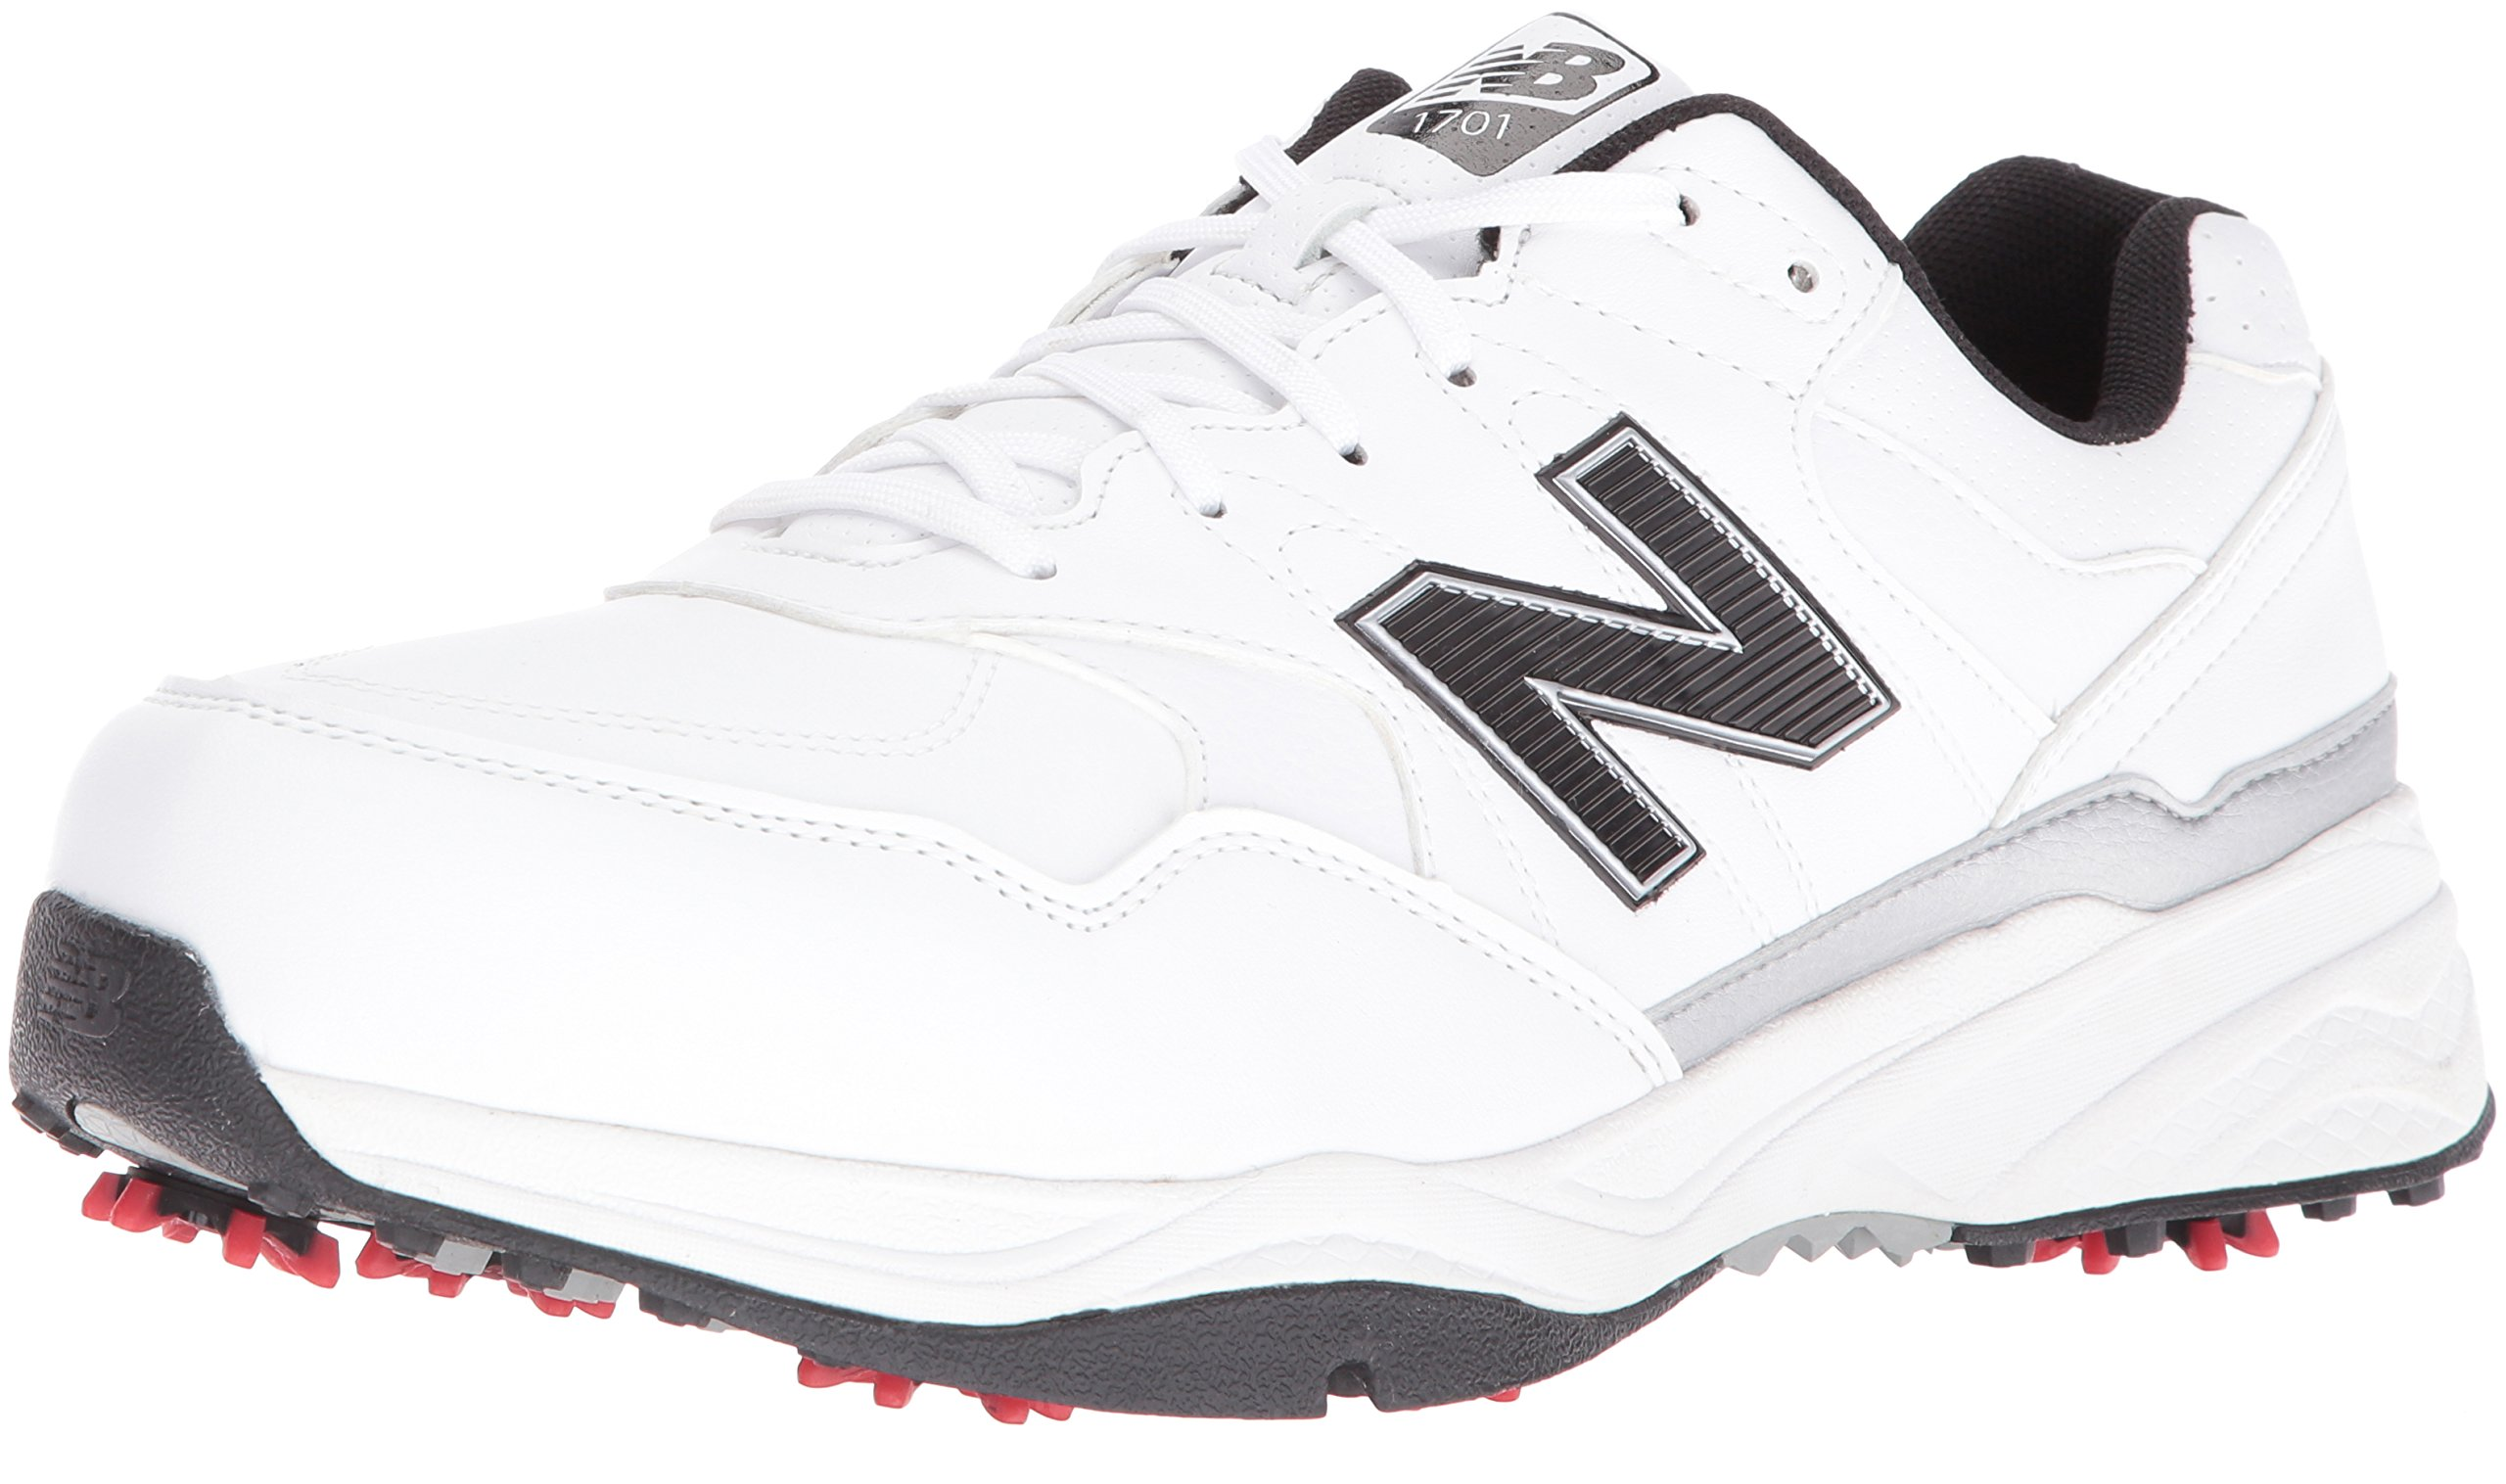 New Balance Men's NBG1701 Golf Shoe, White/Black, 9.5 4E US by New Balance